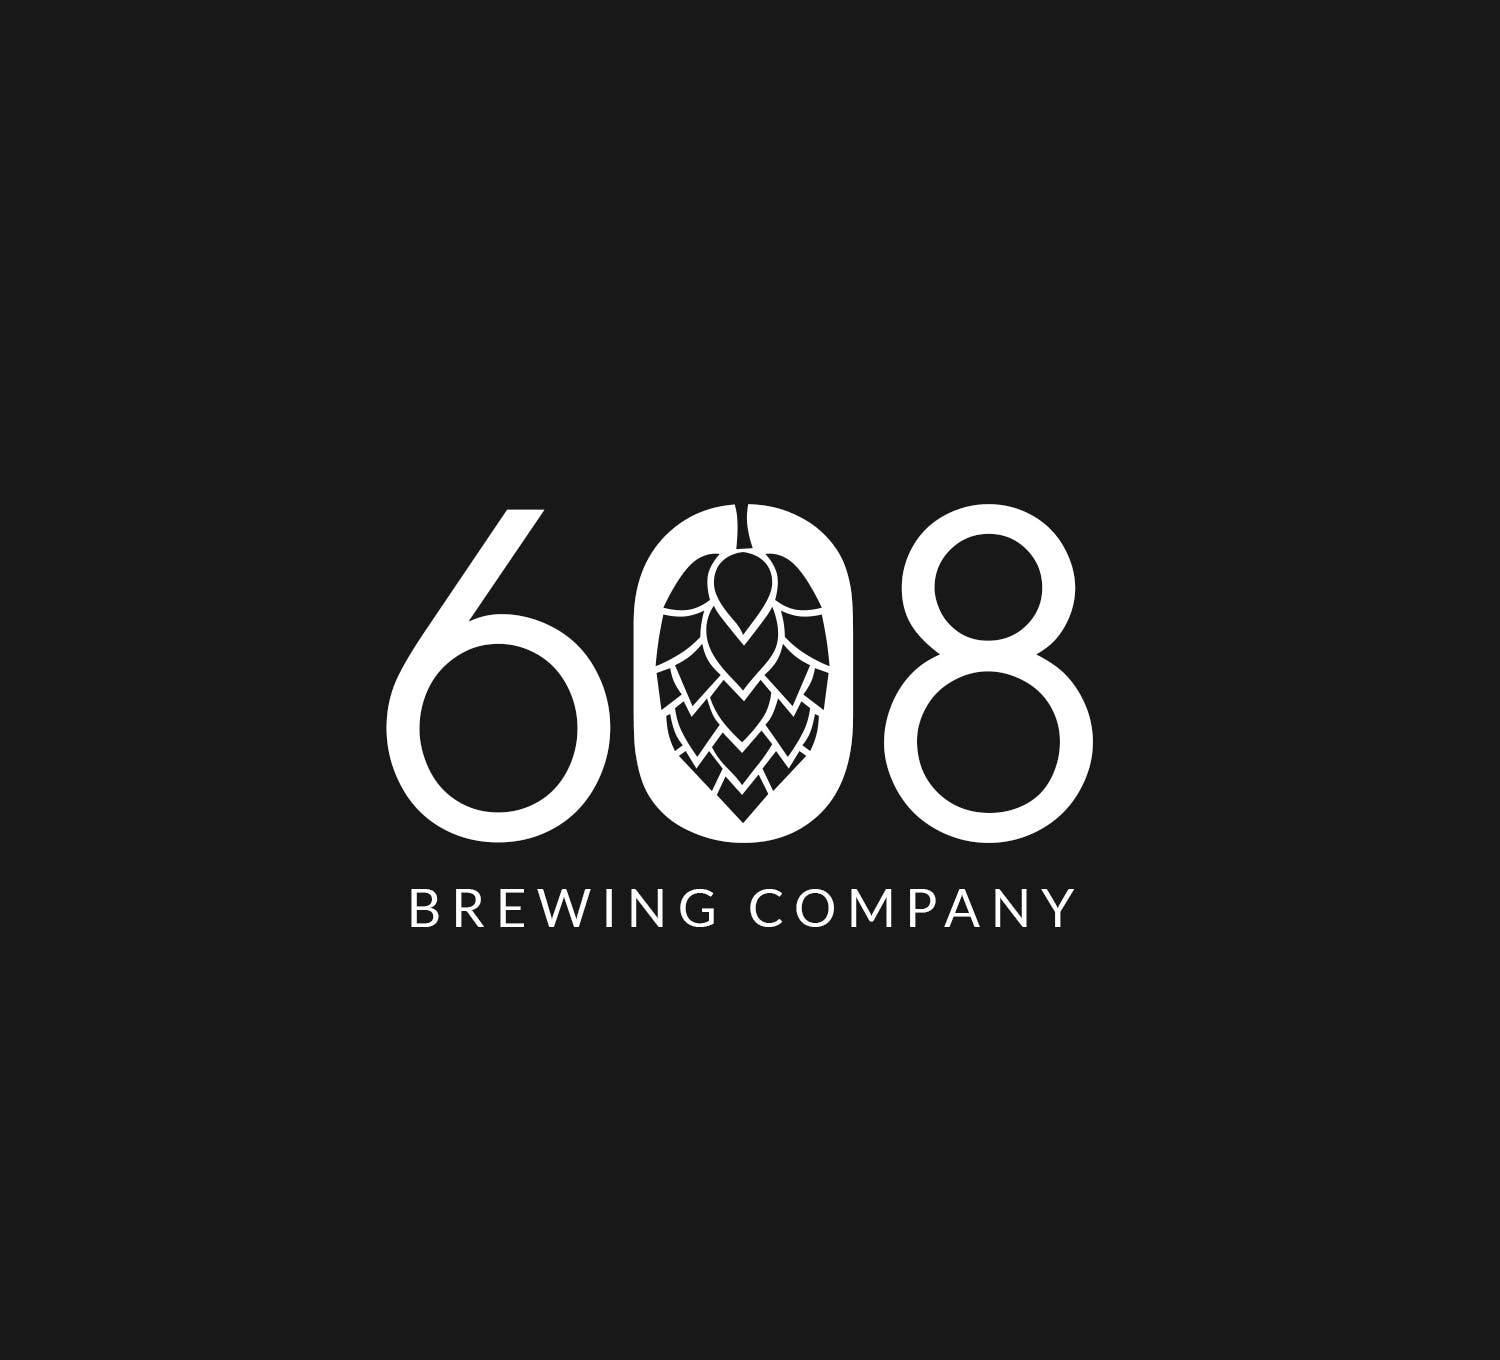 608 Brewing Company Logo